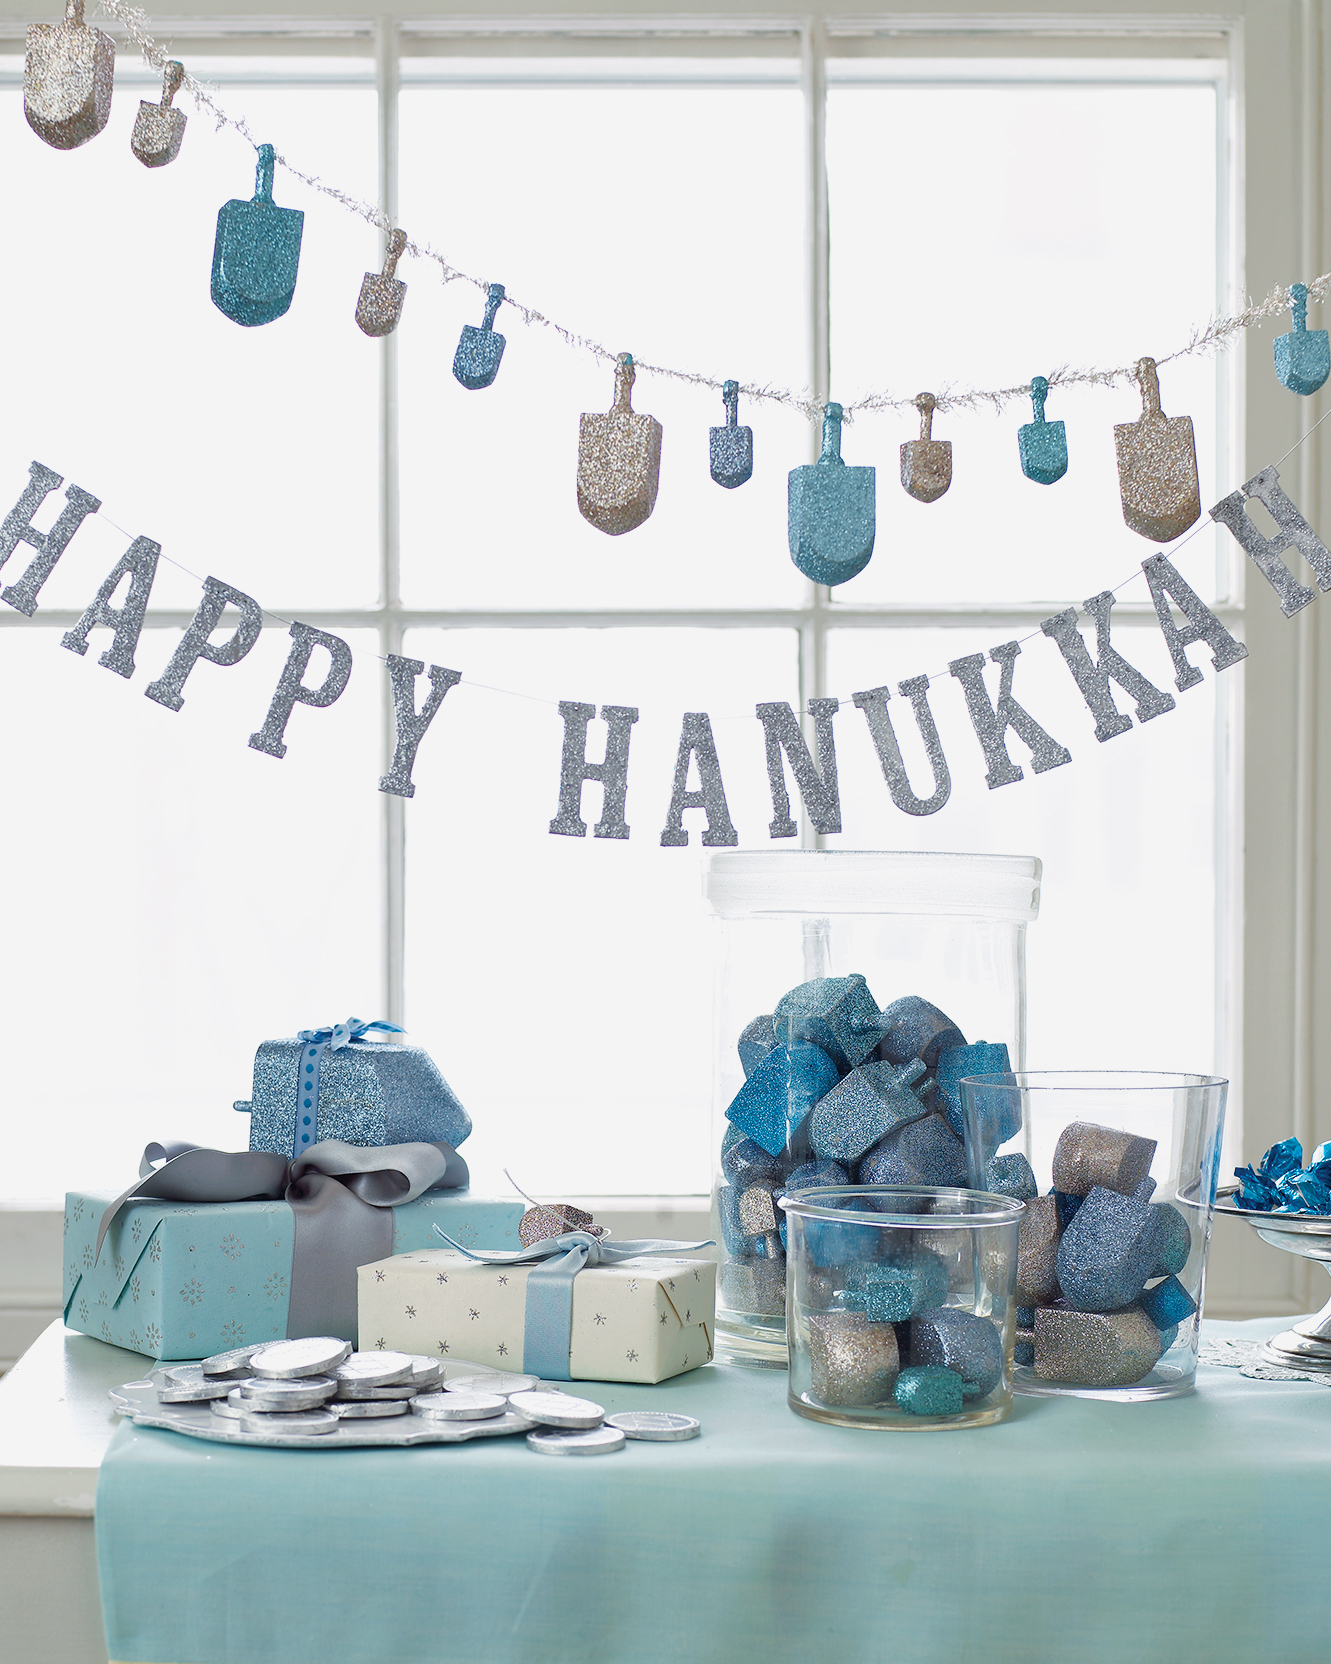 glittered Hanukkah decorations